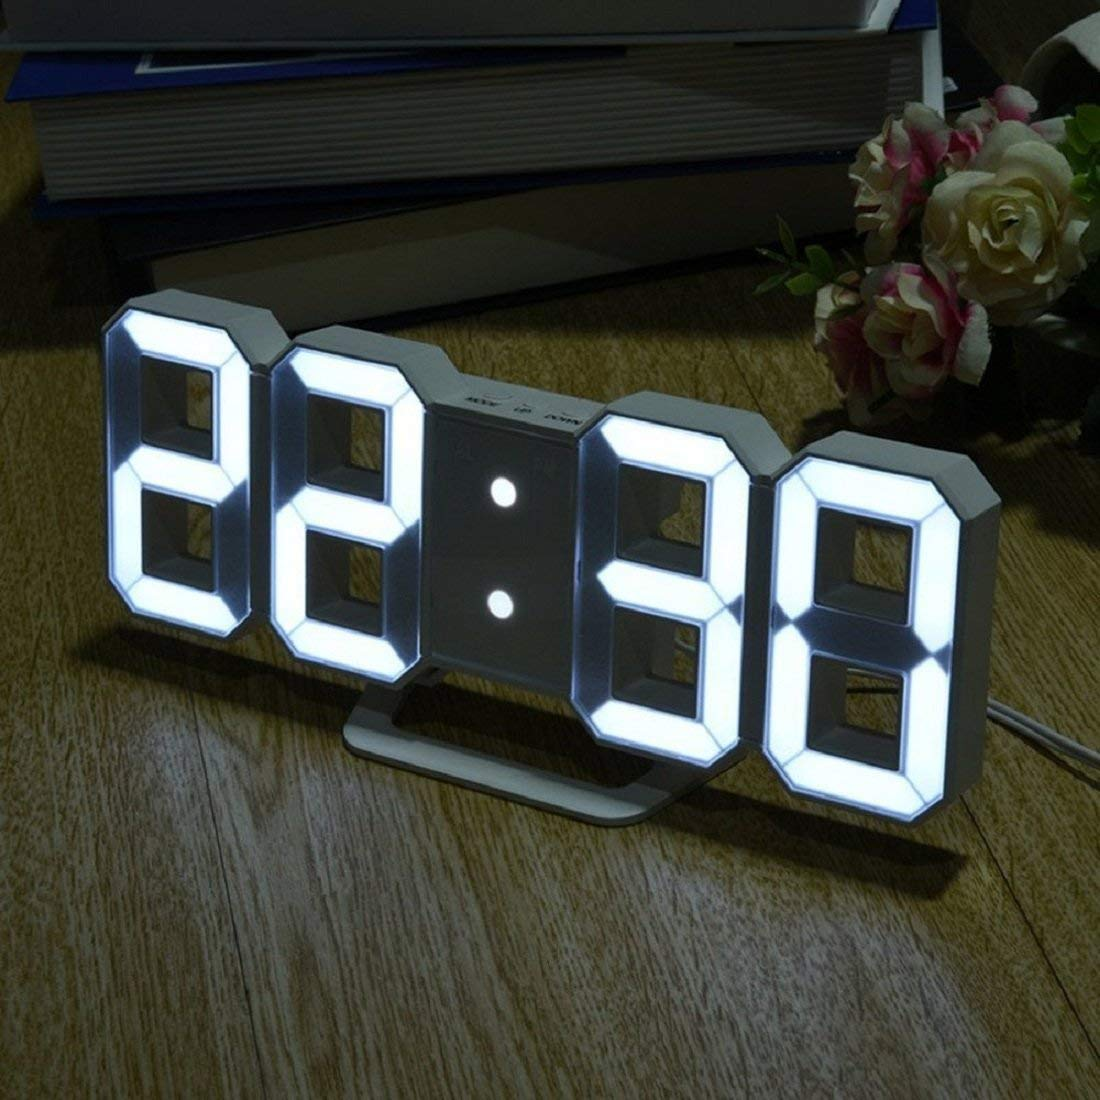 Multi-use 8 Shaped LED Display Desktop Digital Table Clocks 3 levers of Light: Bright Snooze Interval Setting USB Charge